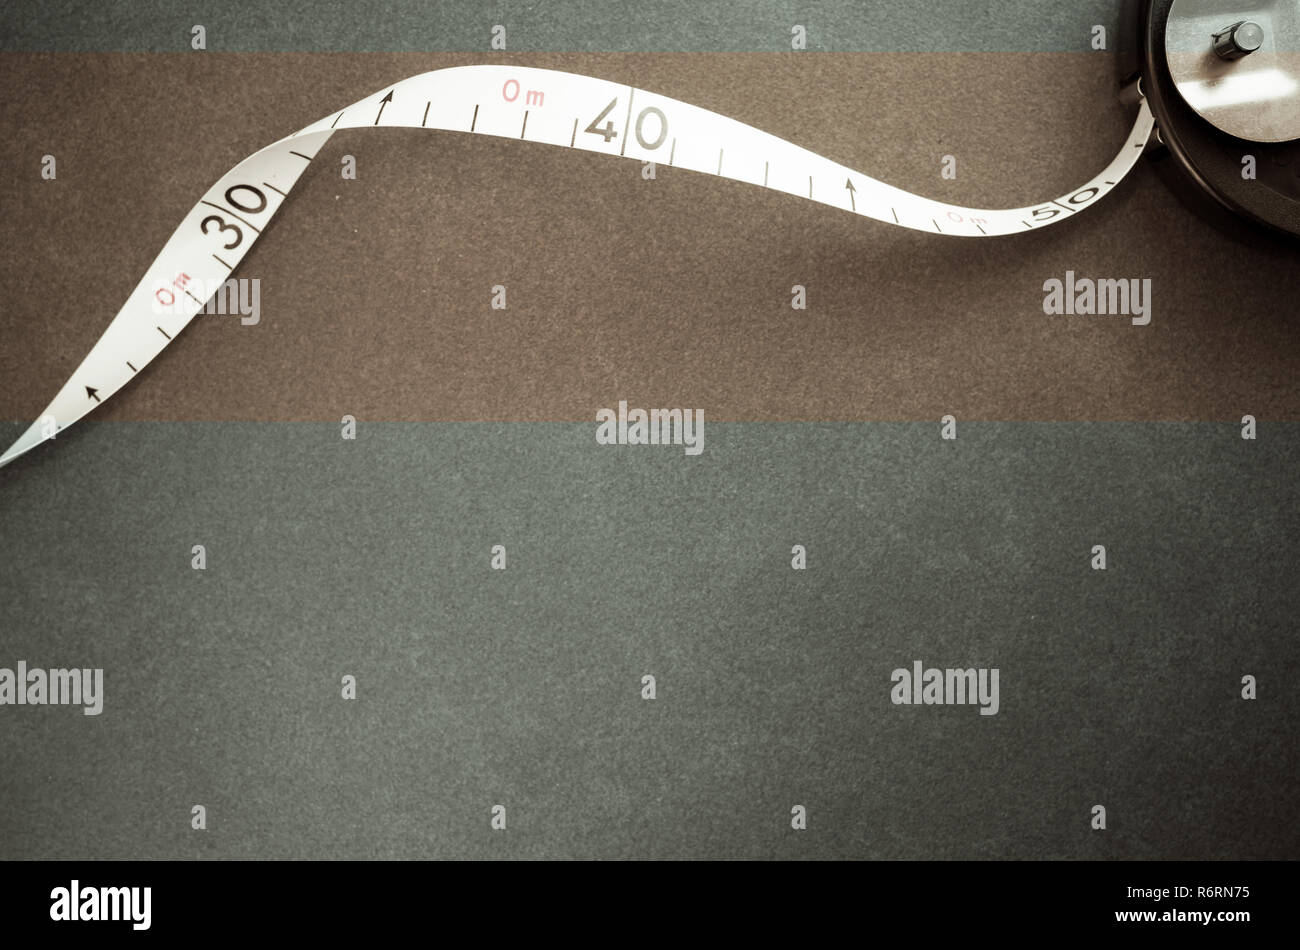 industrial metric flexible ruler on a stone surface - rectangular copy space - Stock Image